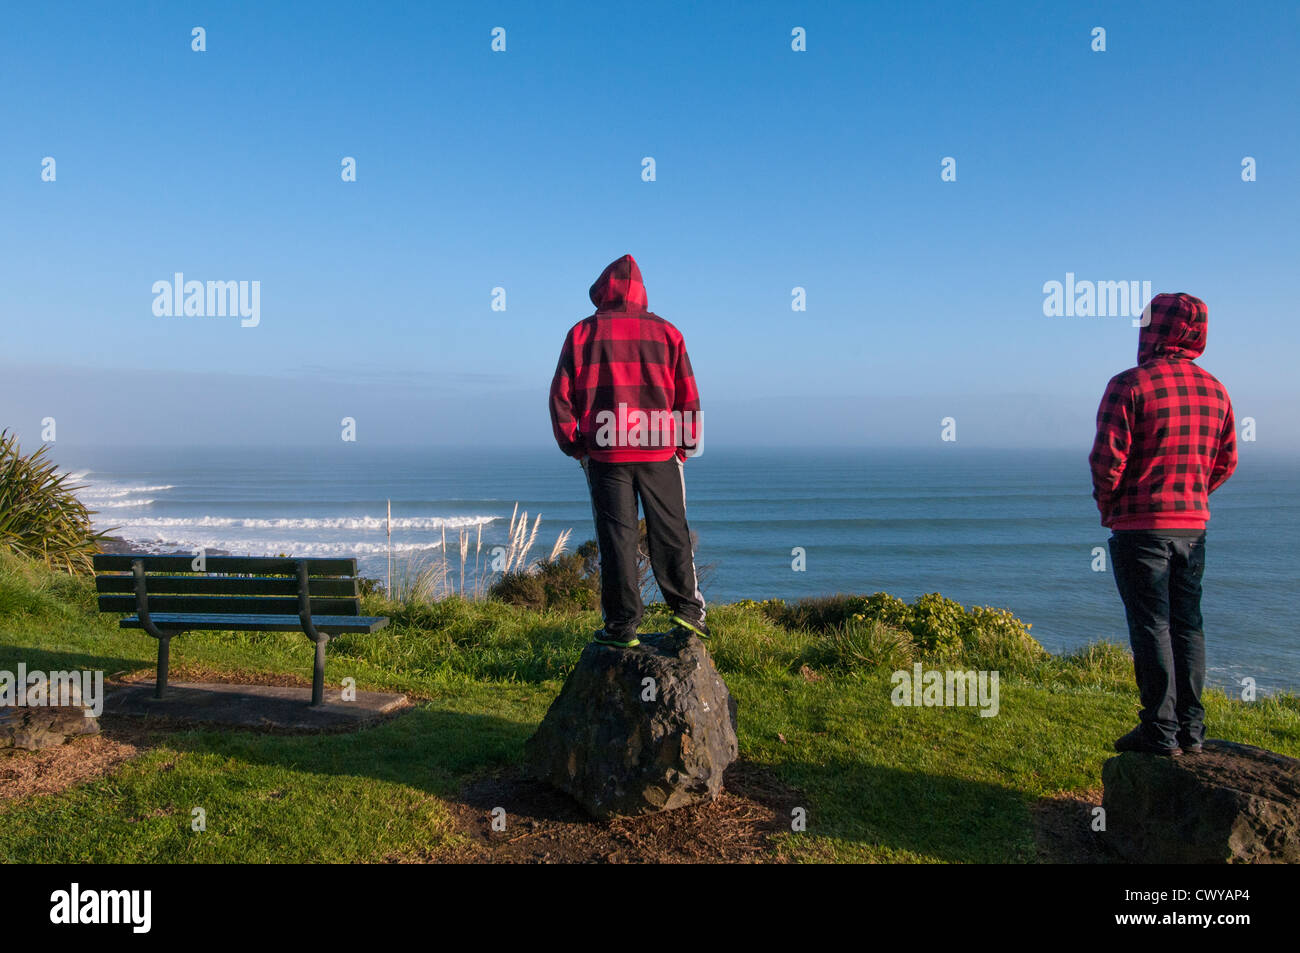 Two men watching the surf from cliff overlooking Whale Bay, with surf points Whale Bay and Indicators in foreground. - Stock Image